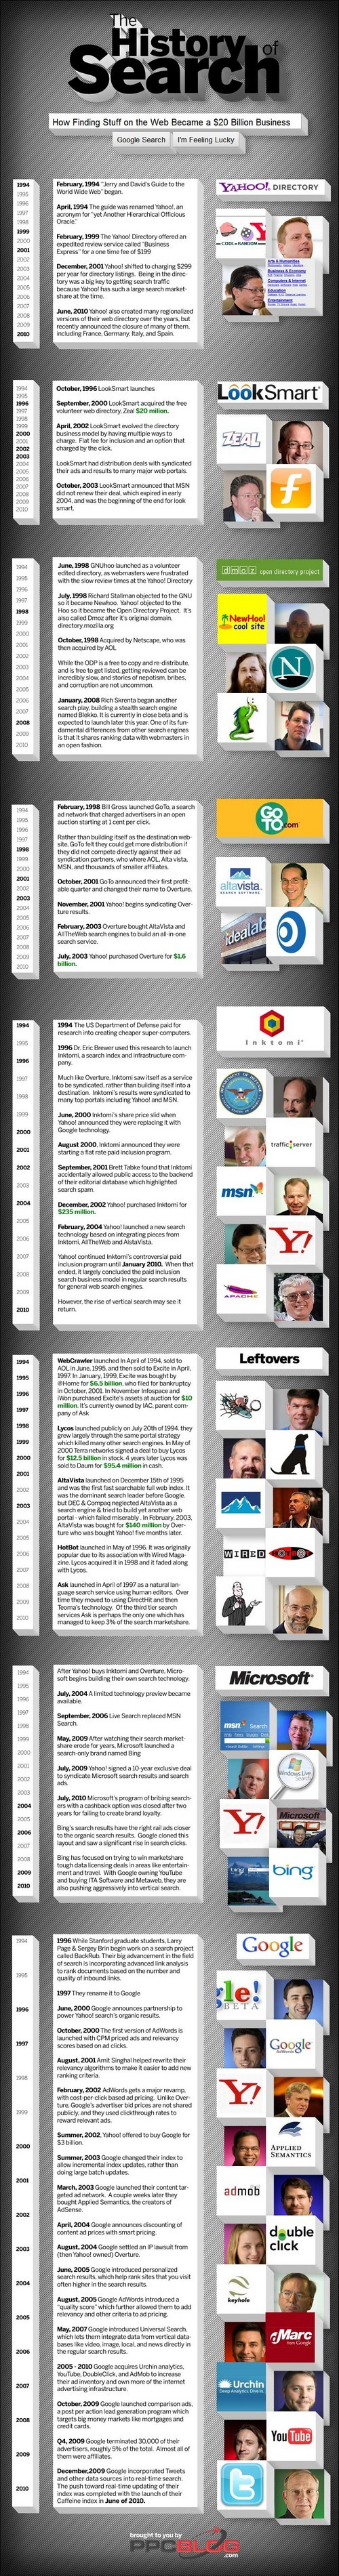 history of search